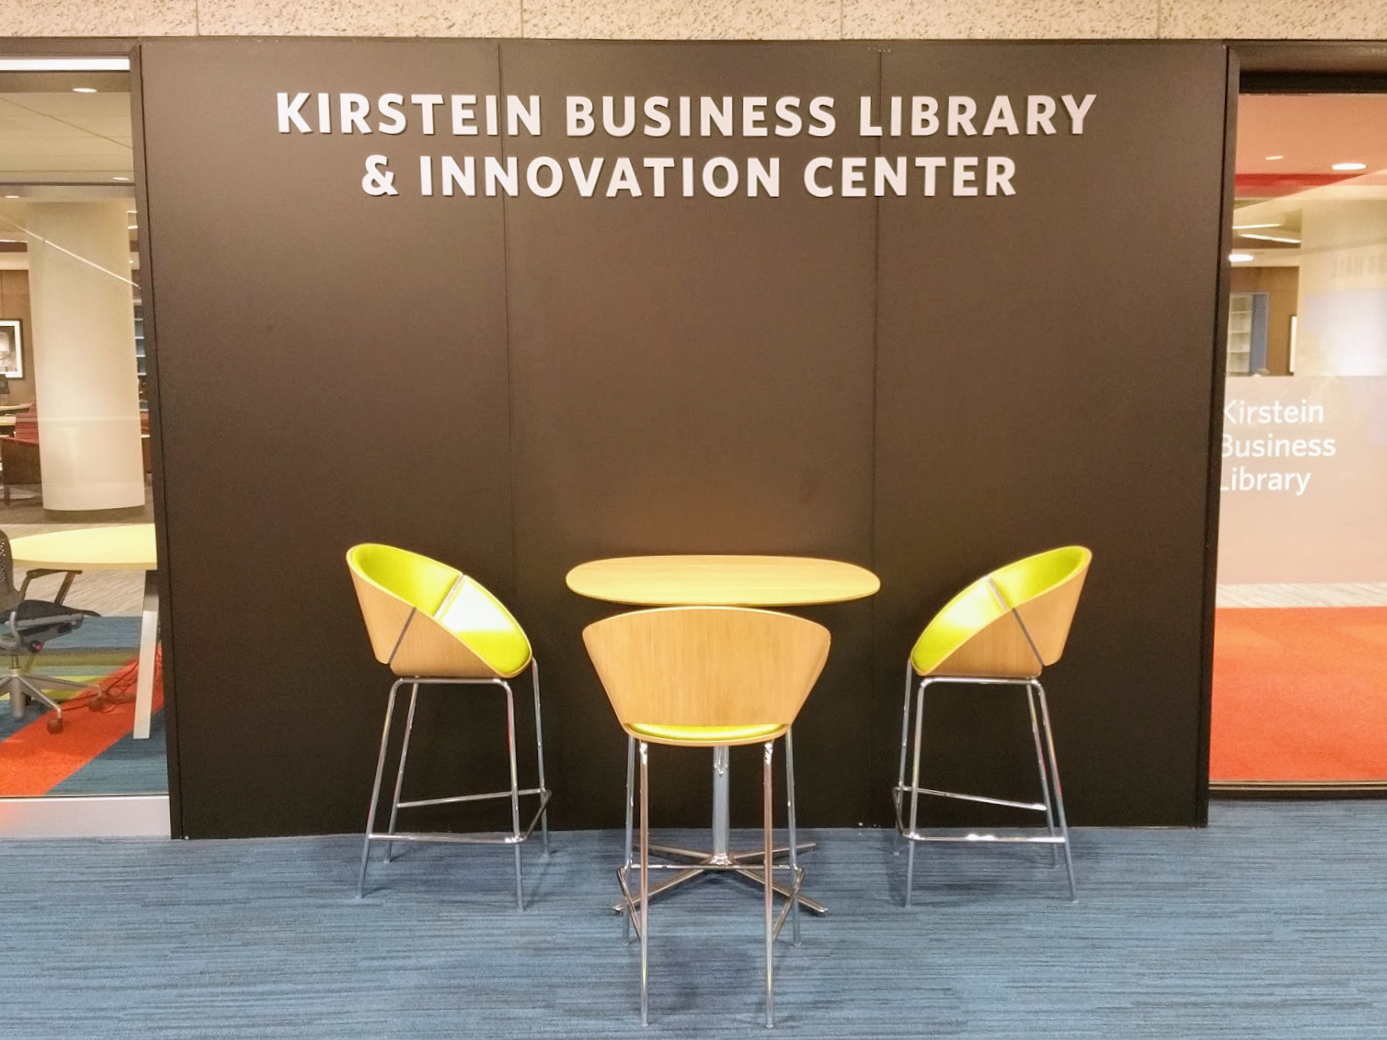 Career Resource Week: Resources and Services from the Kirstein Business Library & Information Center